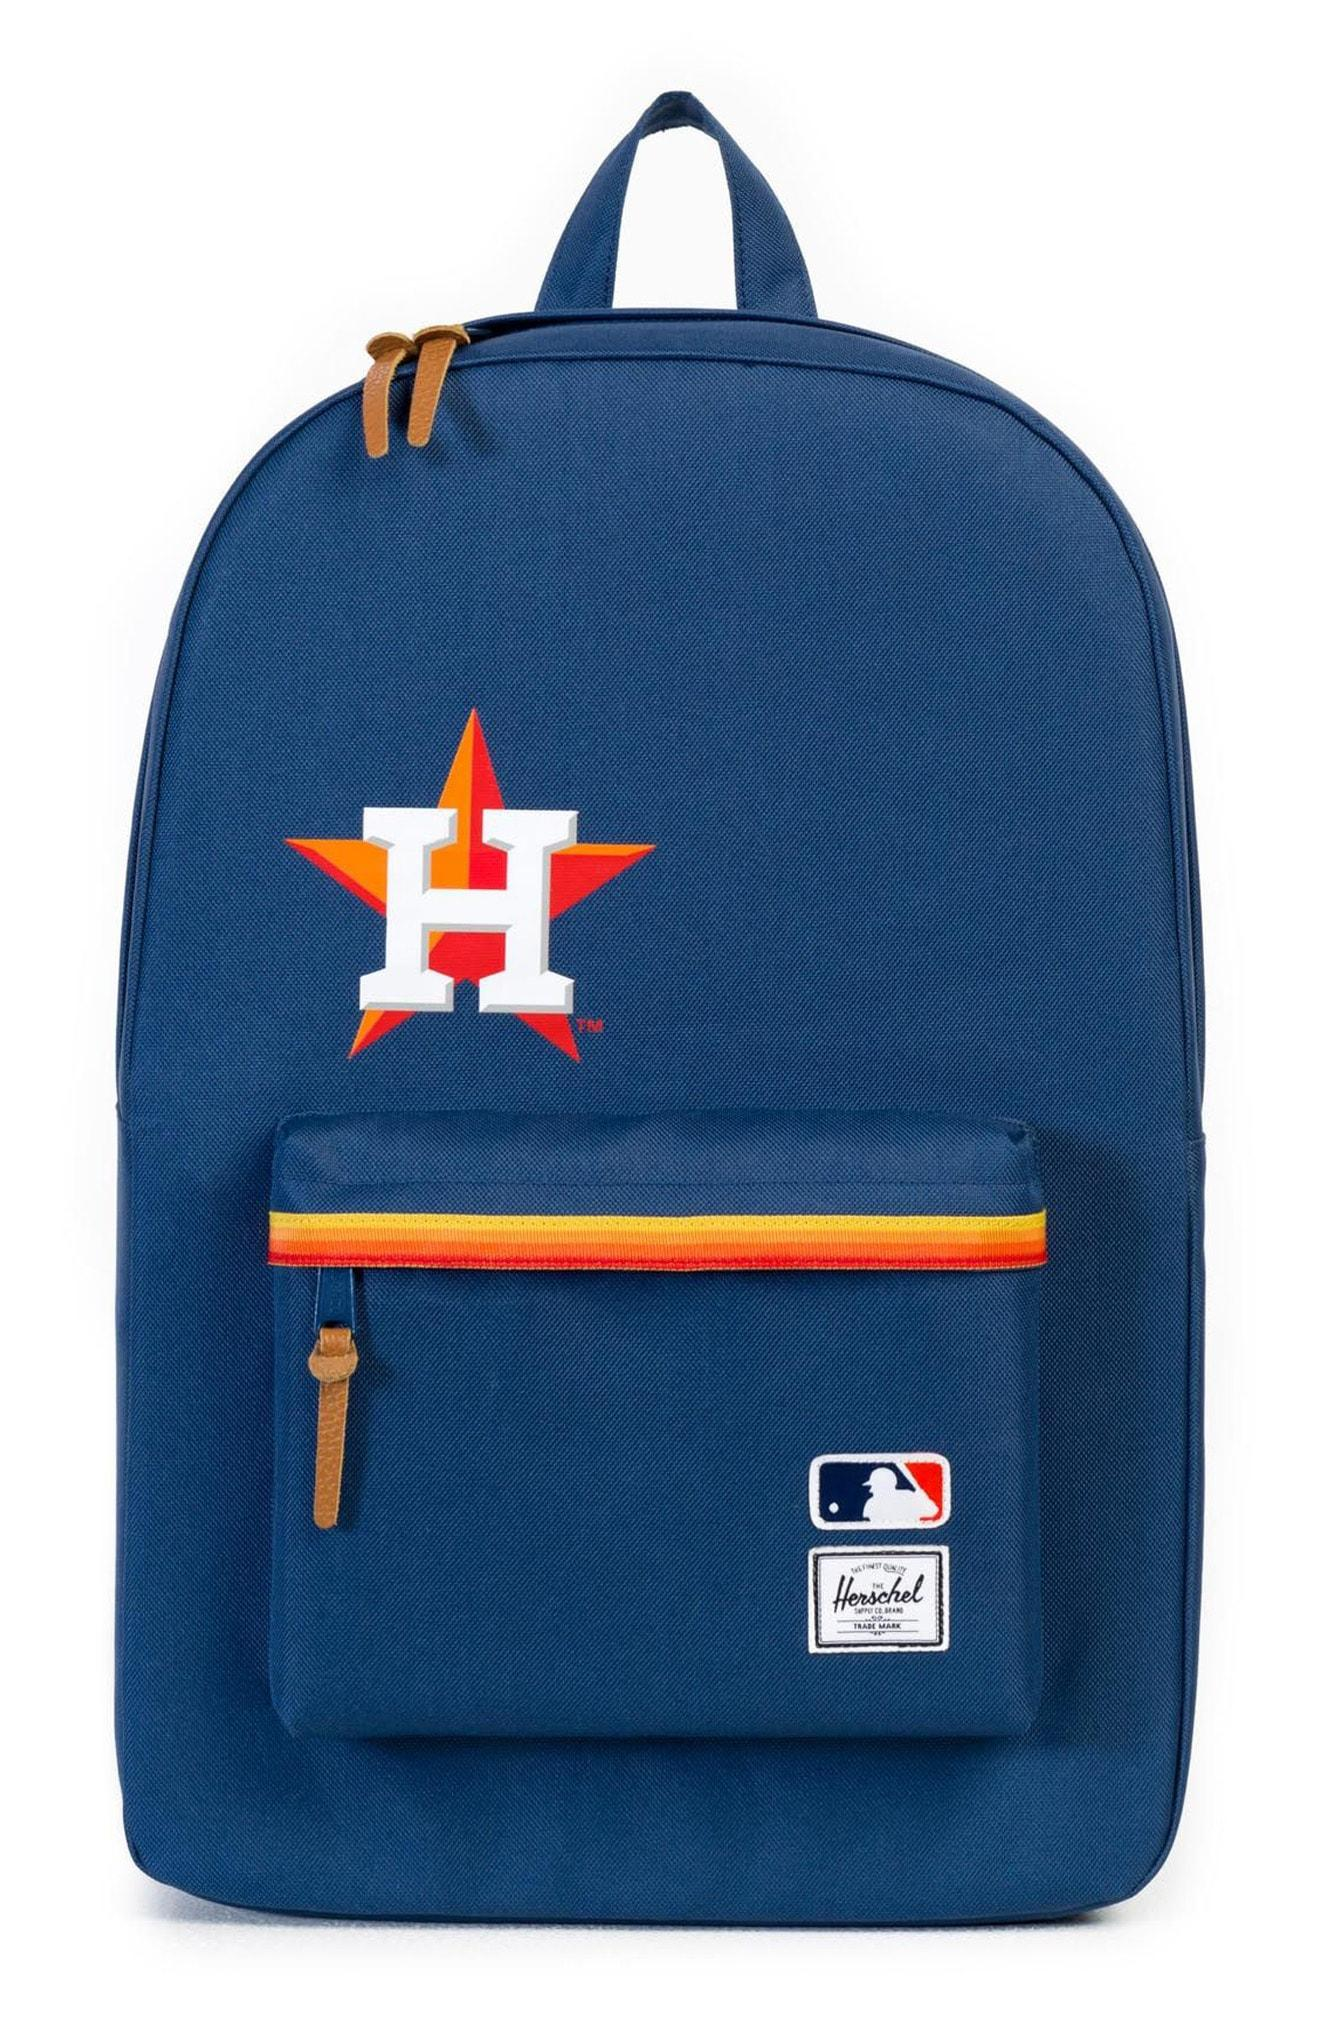 d4ef9a2702 Lyst - Herschel Supply Co. Heritage - Mlb American League Backpack ...